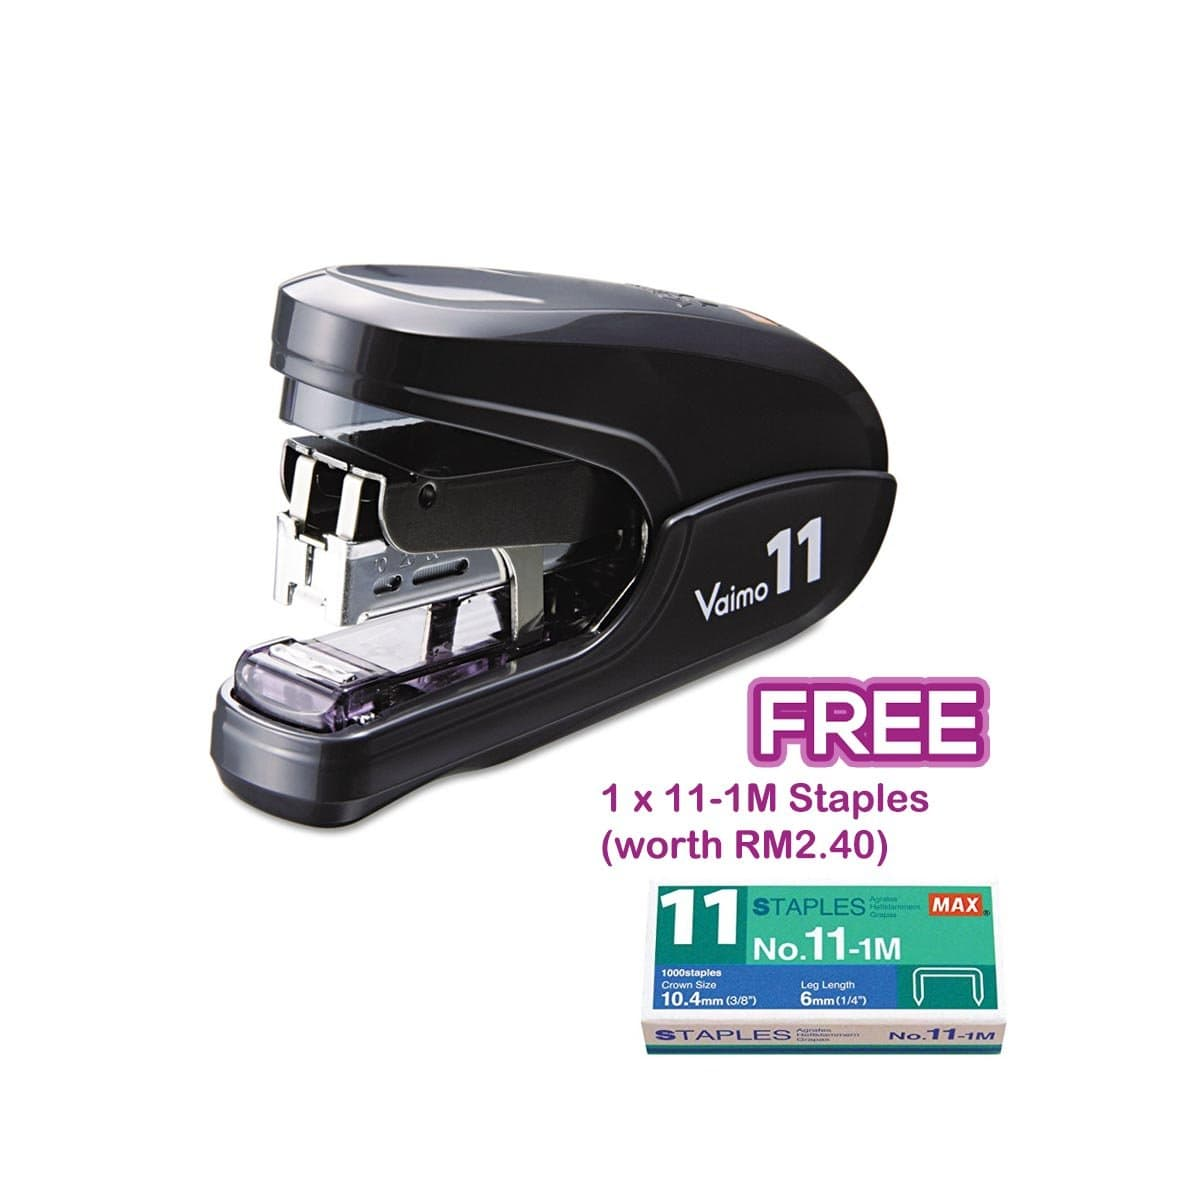 Max Stapler HD-11FLK Black